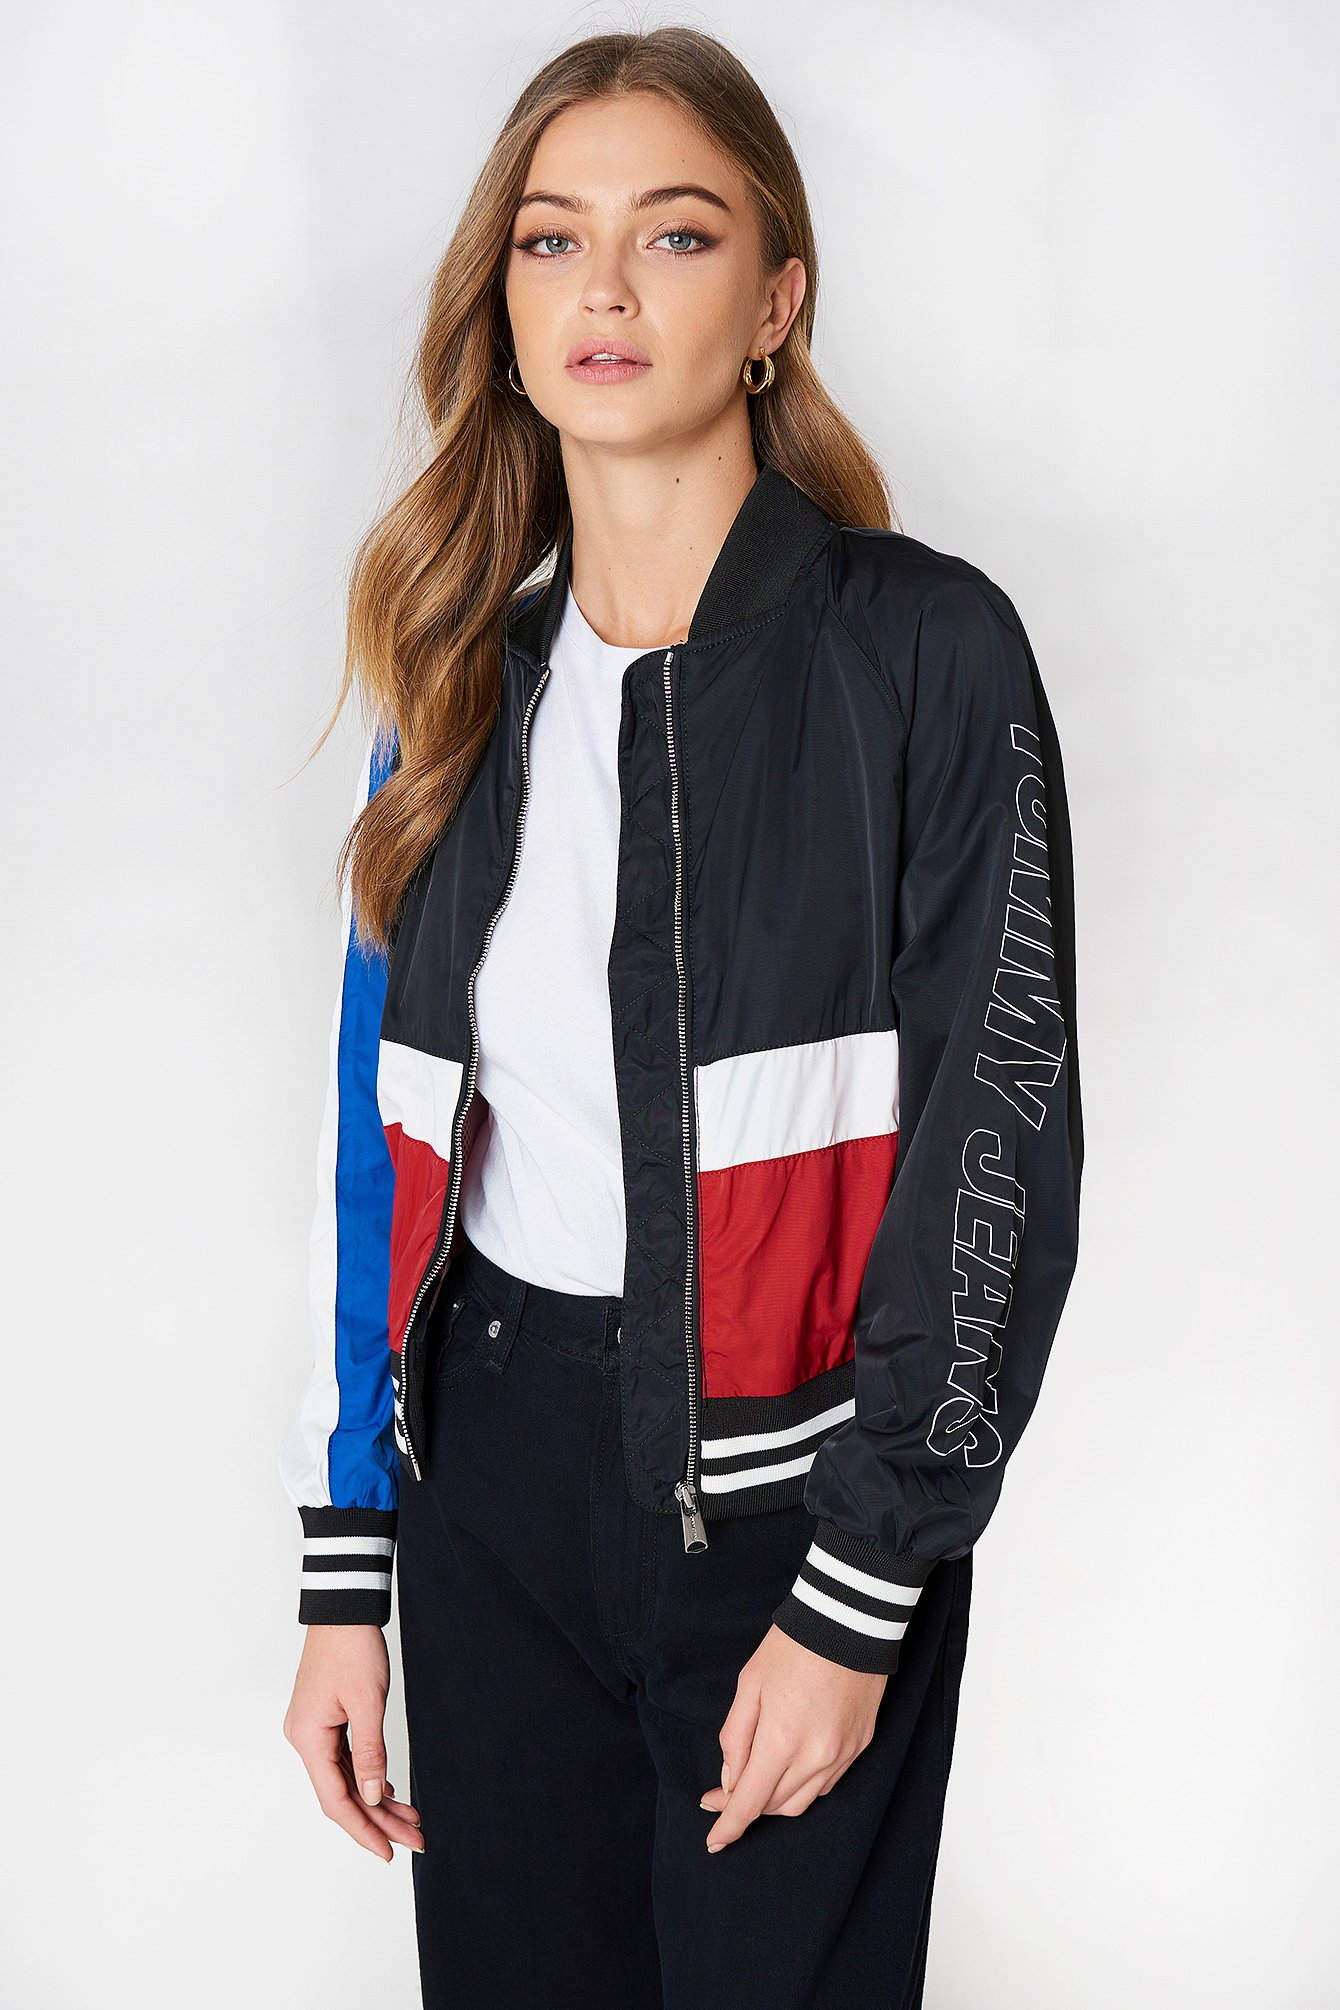 contact us If you'd like further information about Tommy Hilfiger and you can't find it in our FAQs, please get in touch. Simply fill out the form, include your message, and we'll get back to you as soon as we can.